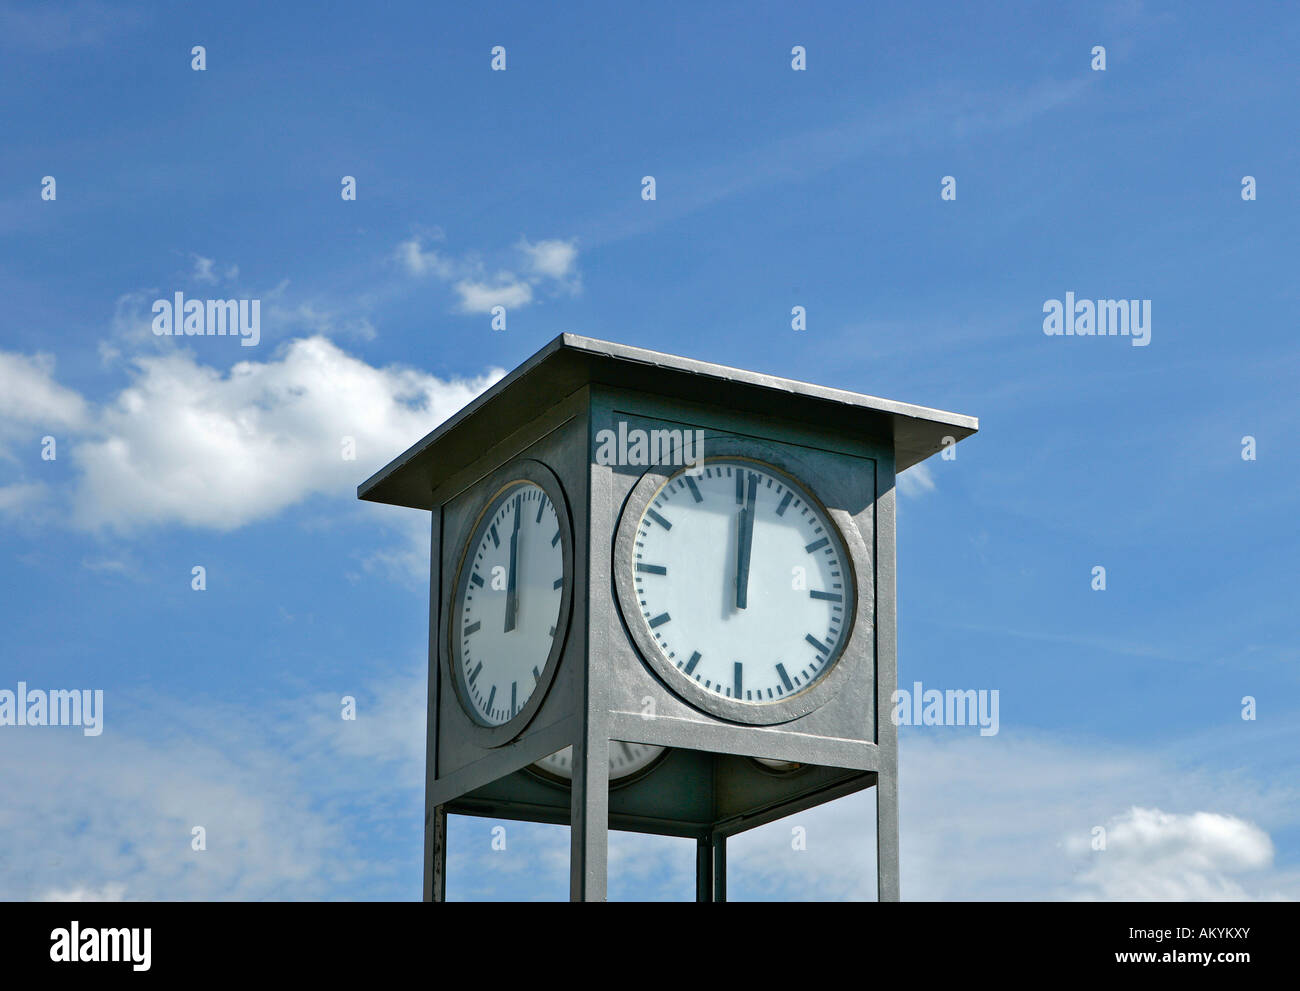 Clock showing 1 minute past 12 noon Stock Photo: 15100274 - Alamy